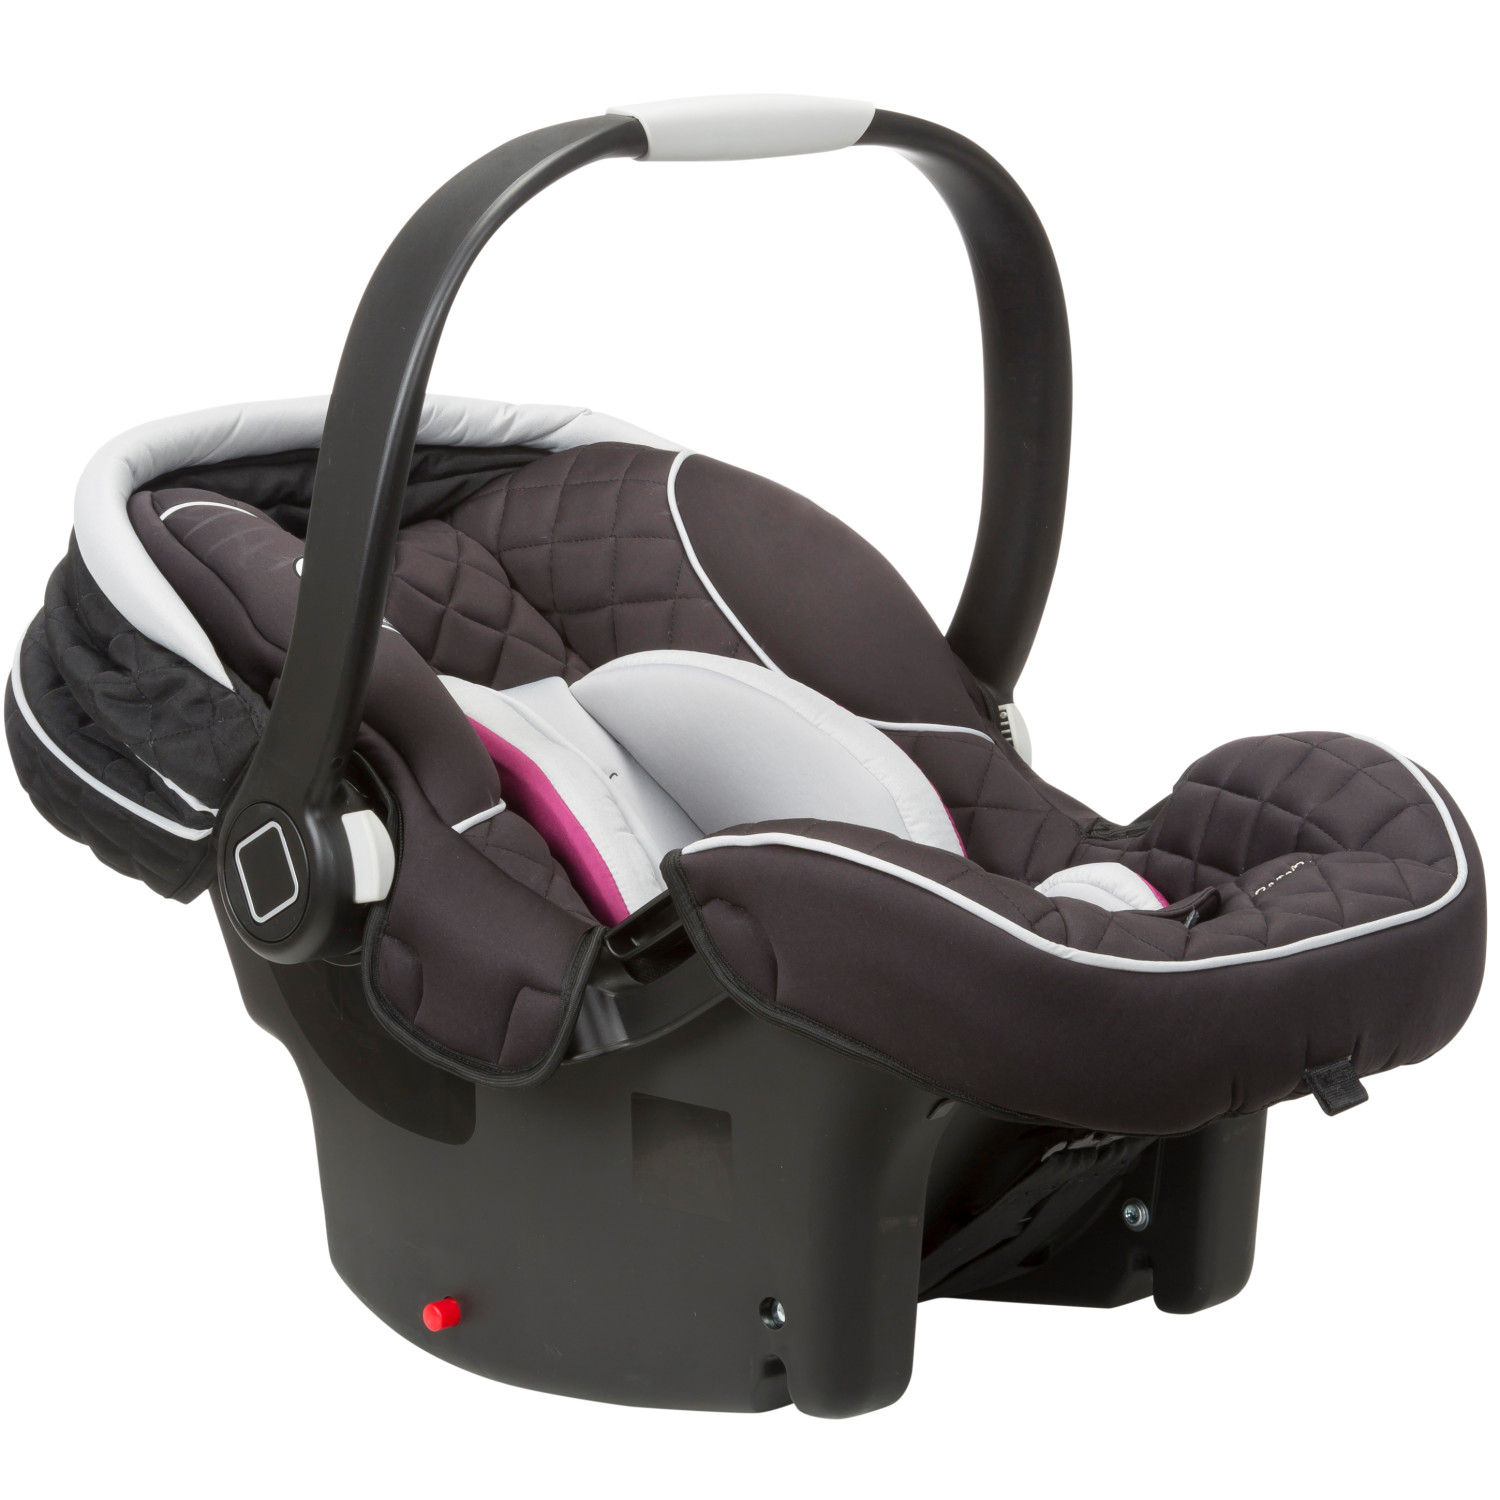 Eddie Bauer Baby Car Seat Base